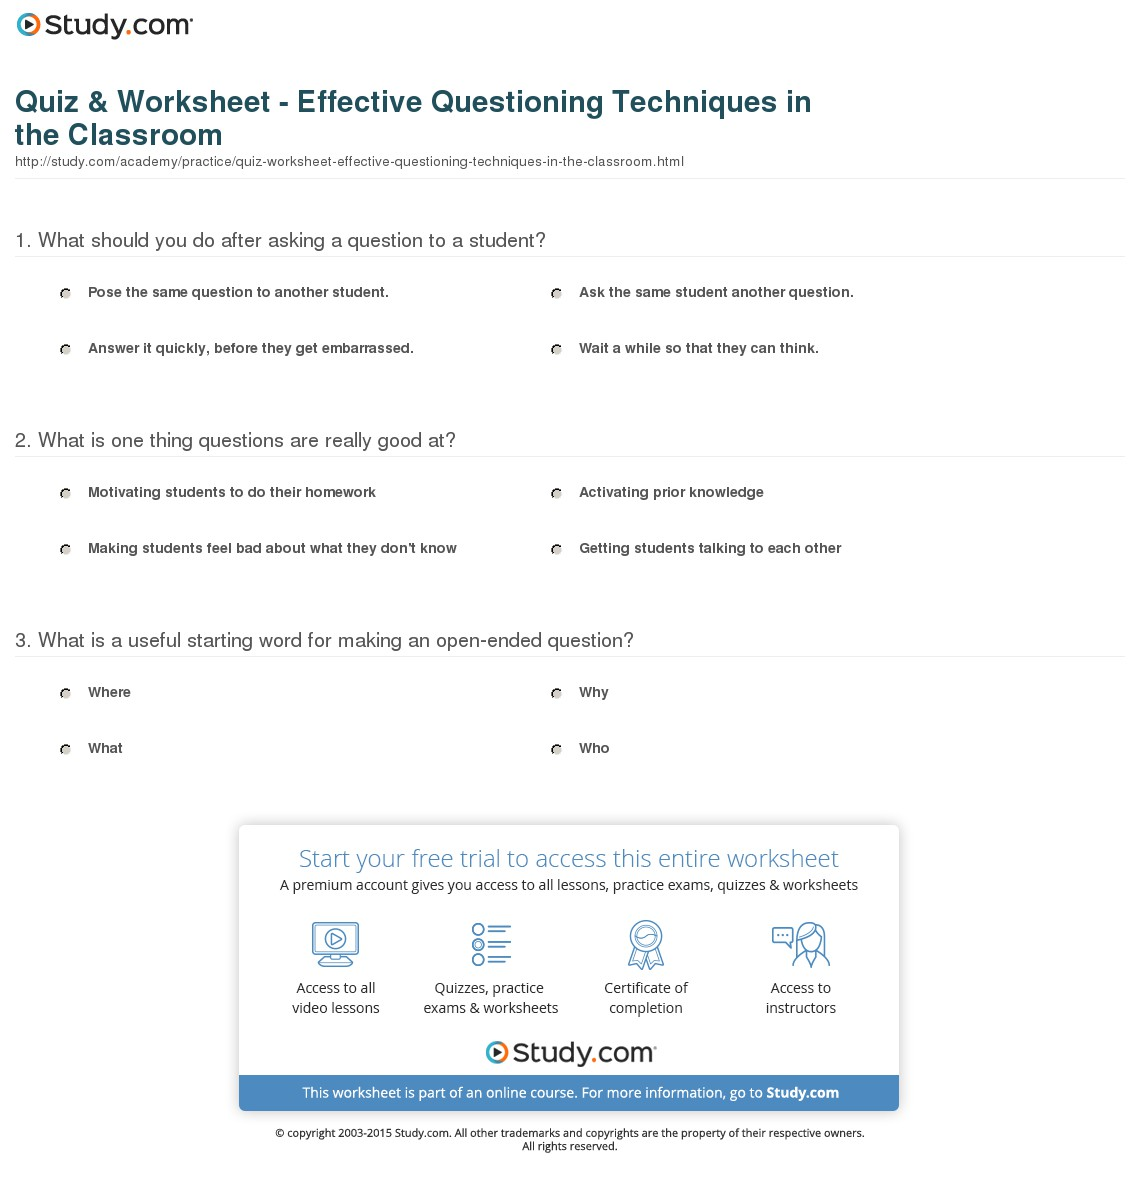 010 Essay Example Quiz Worksheet Effective Questioning Techniques In The Classroom American Fascinating Revolution Causes Of Conclusion Outline Introduction Full